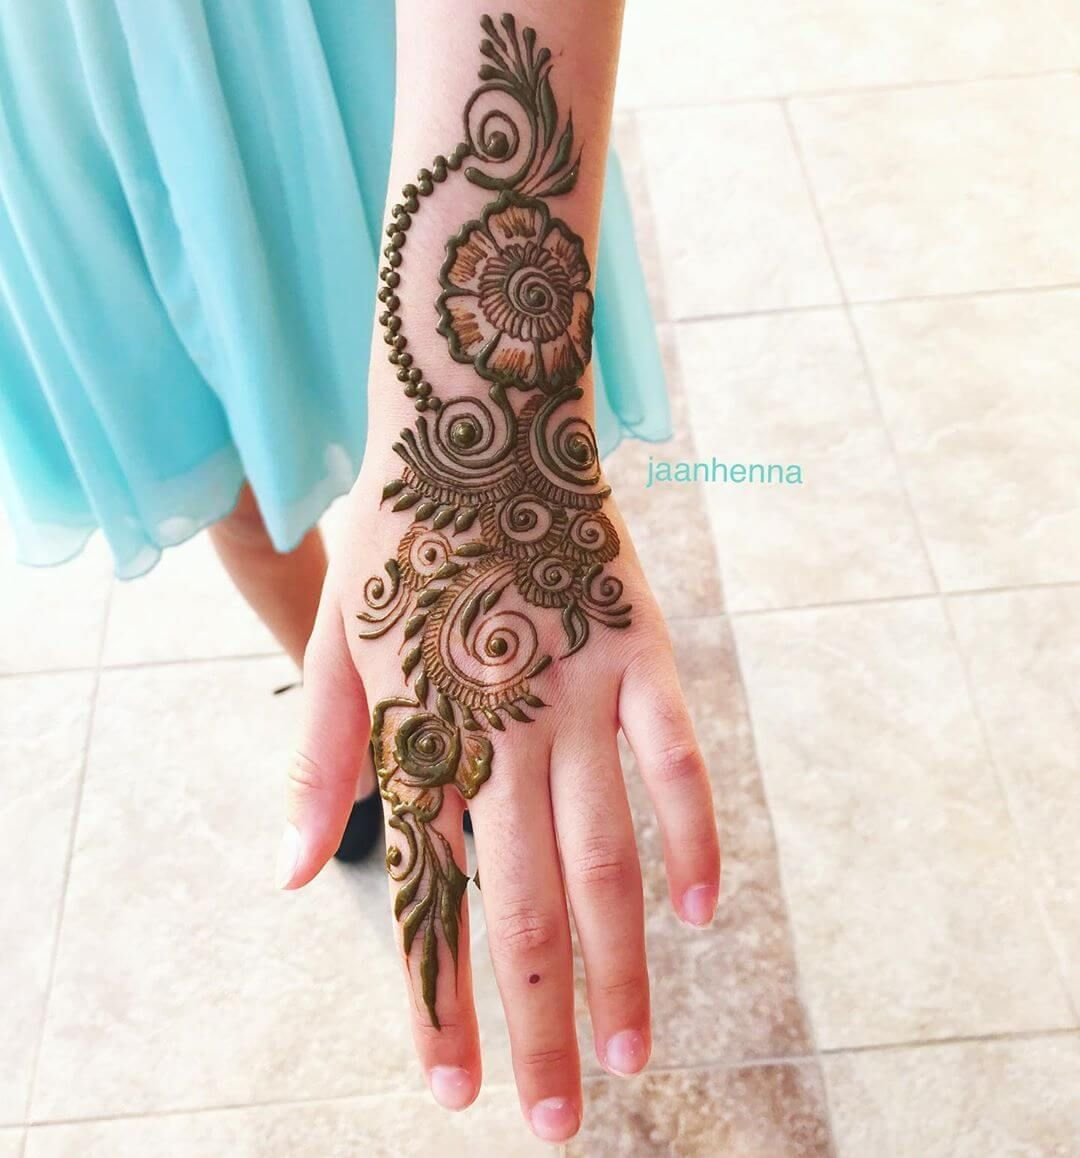 Latest Simple Arabic Mehndi Designs 2020 With Videos Daily Infotainment In 2020 Simple Arabic Mehndi Simple Arabic Mehndi Designs Beautiful Mehndi Design